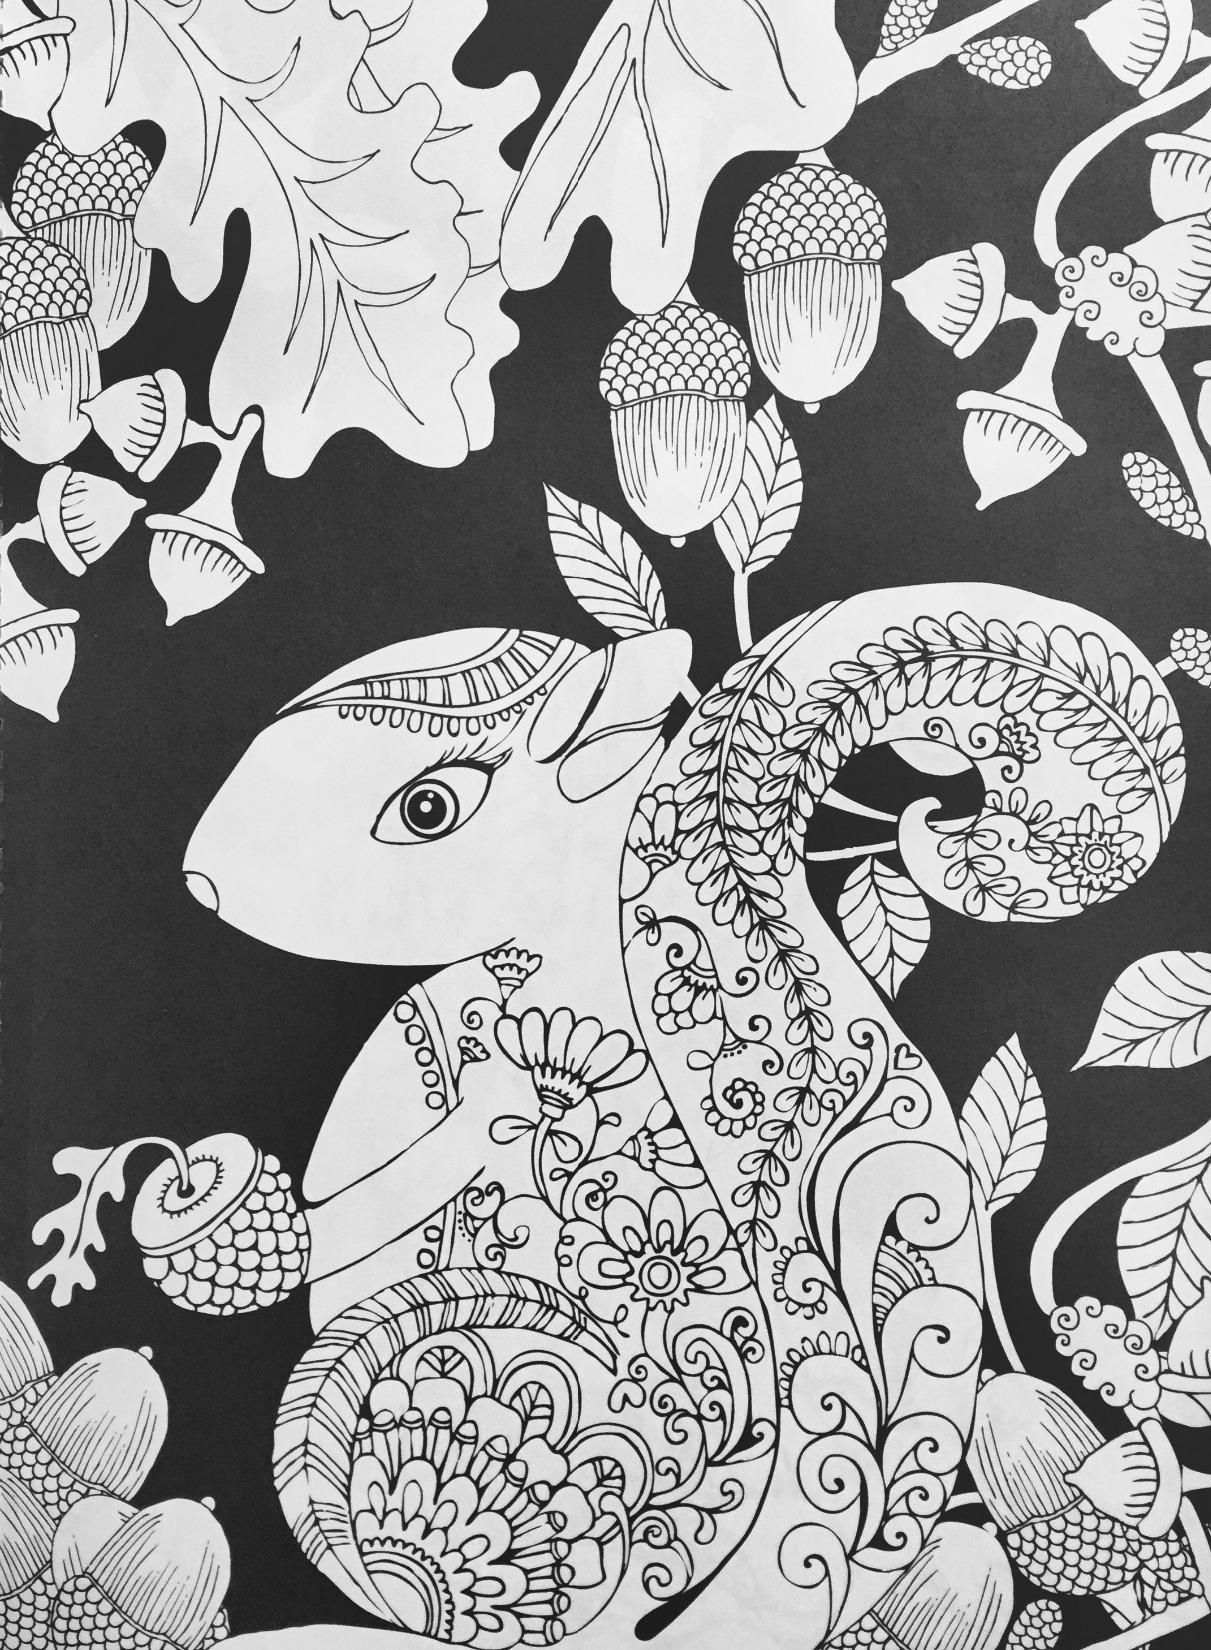 Amazon.com: Creative Haven Midnight Forest Coloring Book: Animal ...